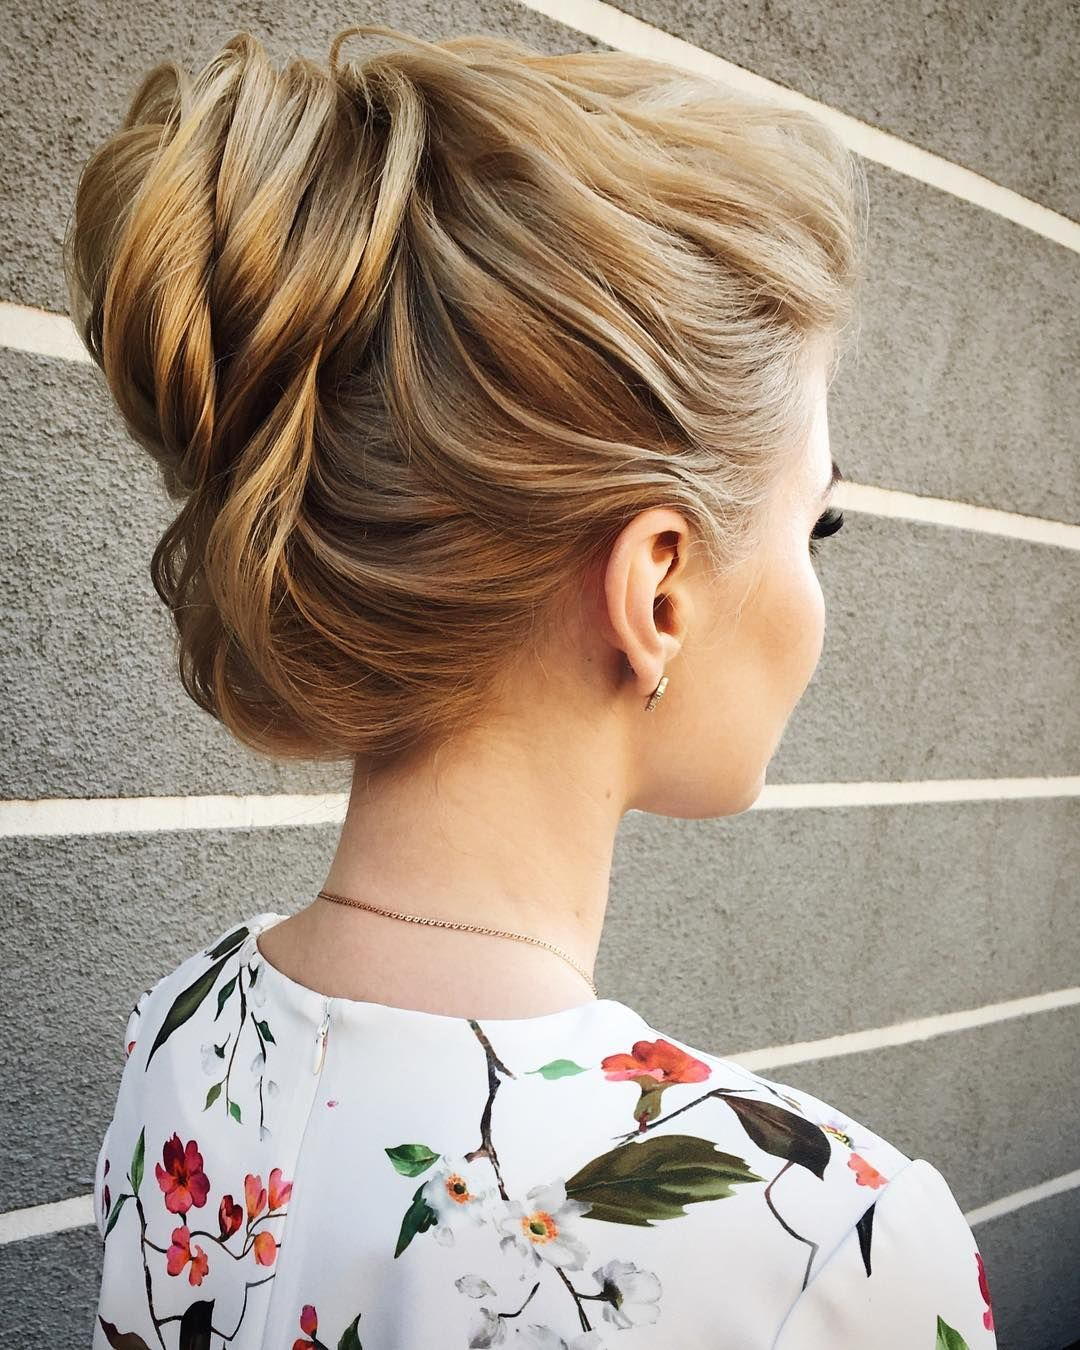 Hairstyle inspiration : Lena Bogucharskaya